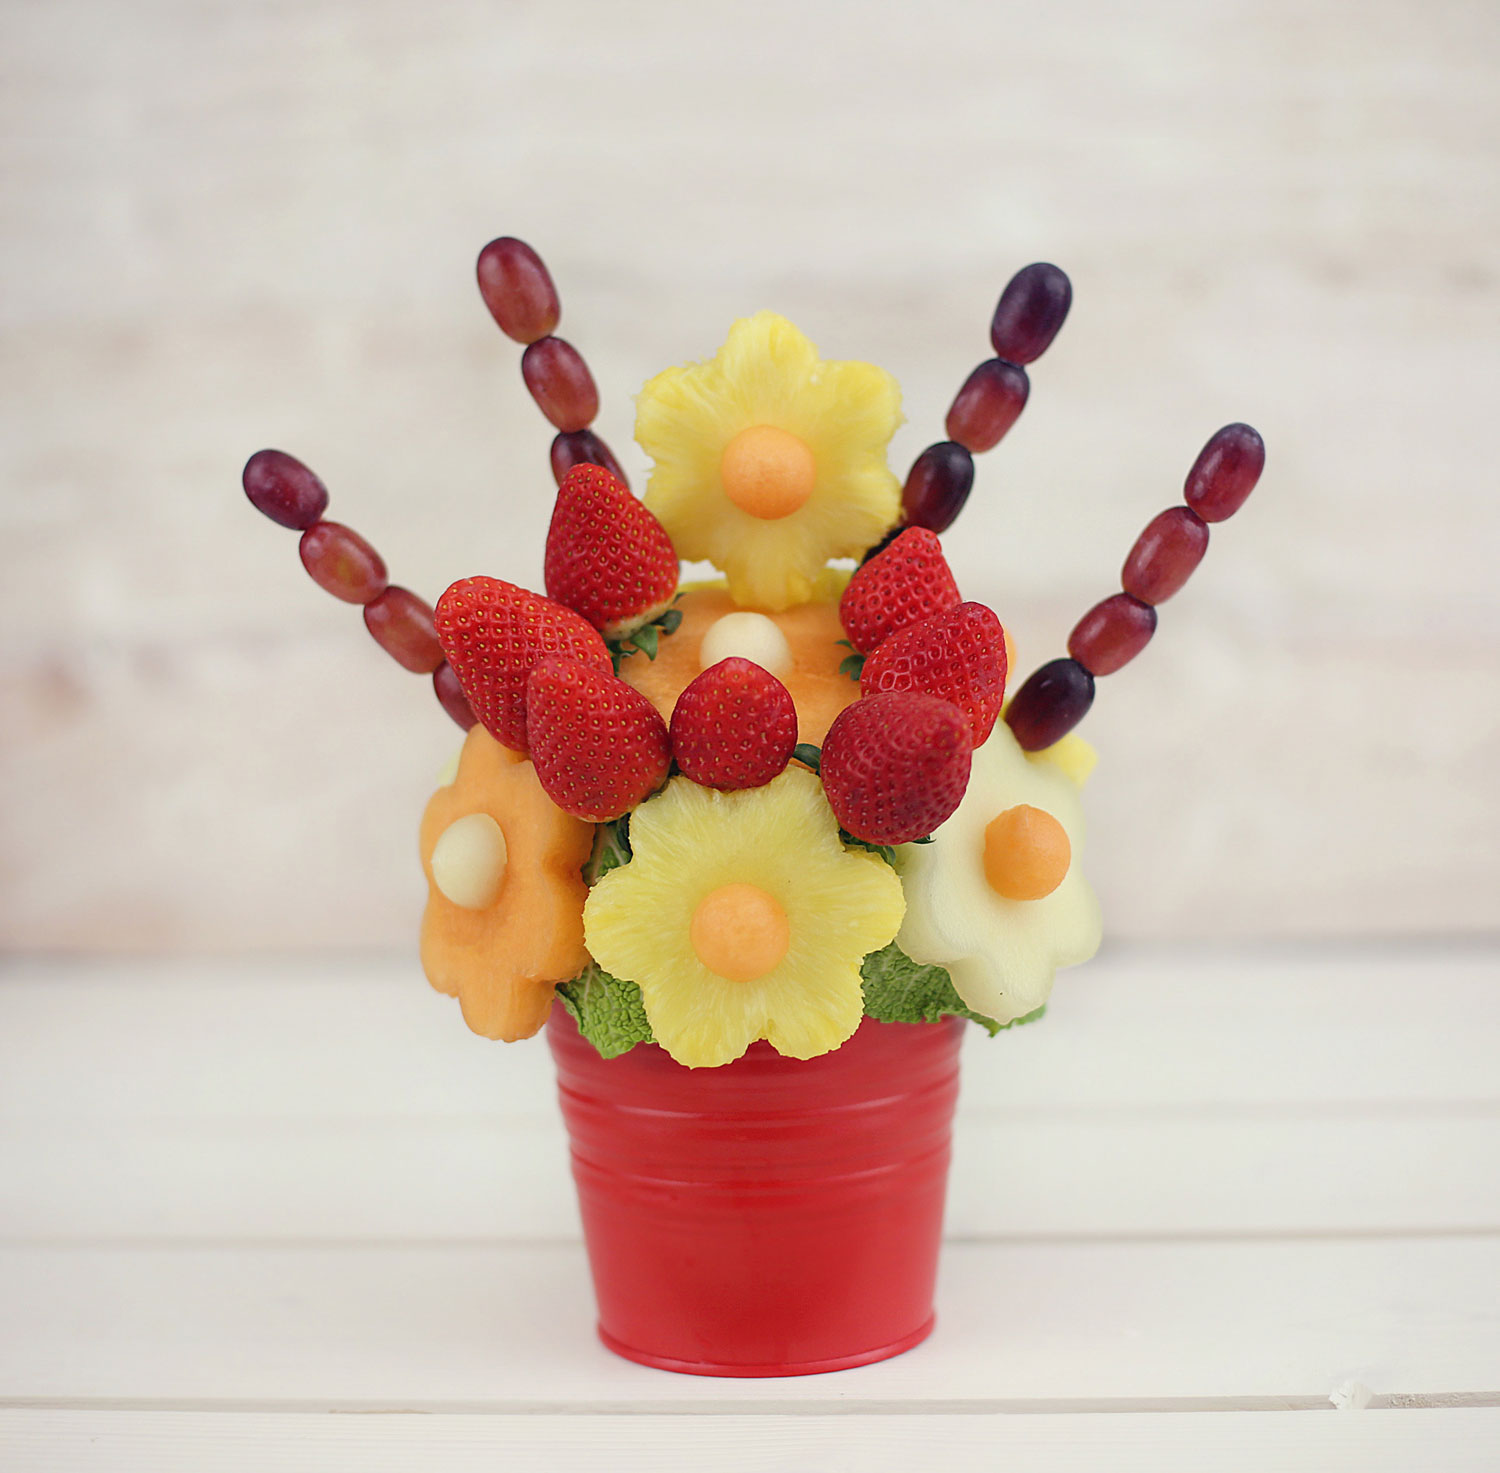 Blooming Flowers Edible Fruit Bouquet